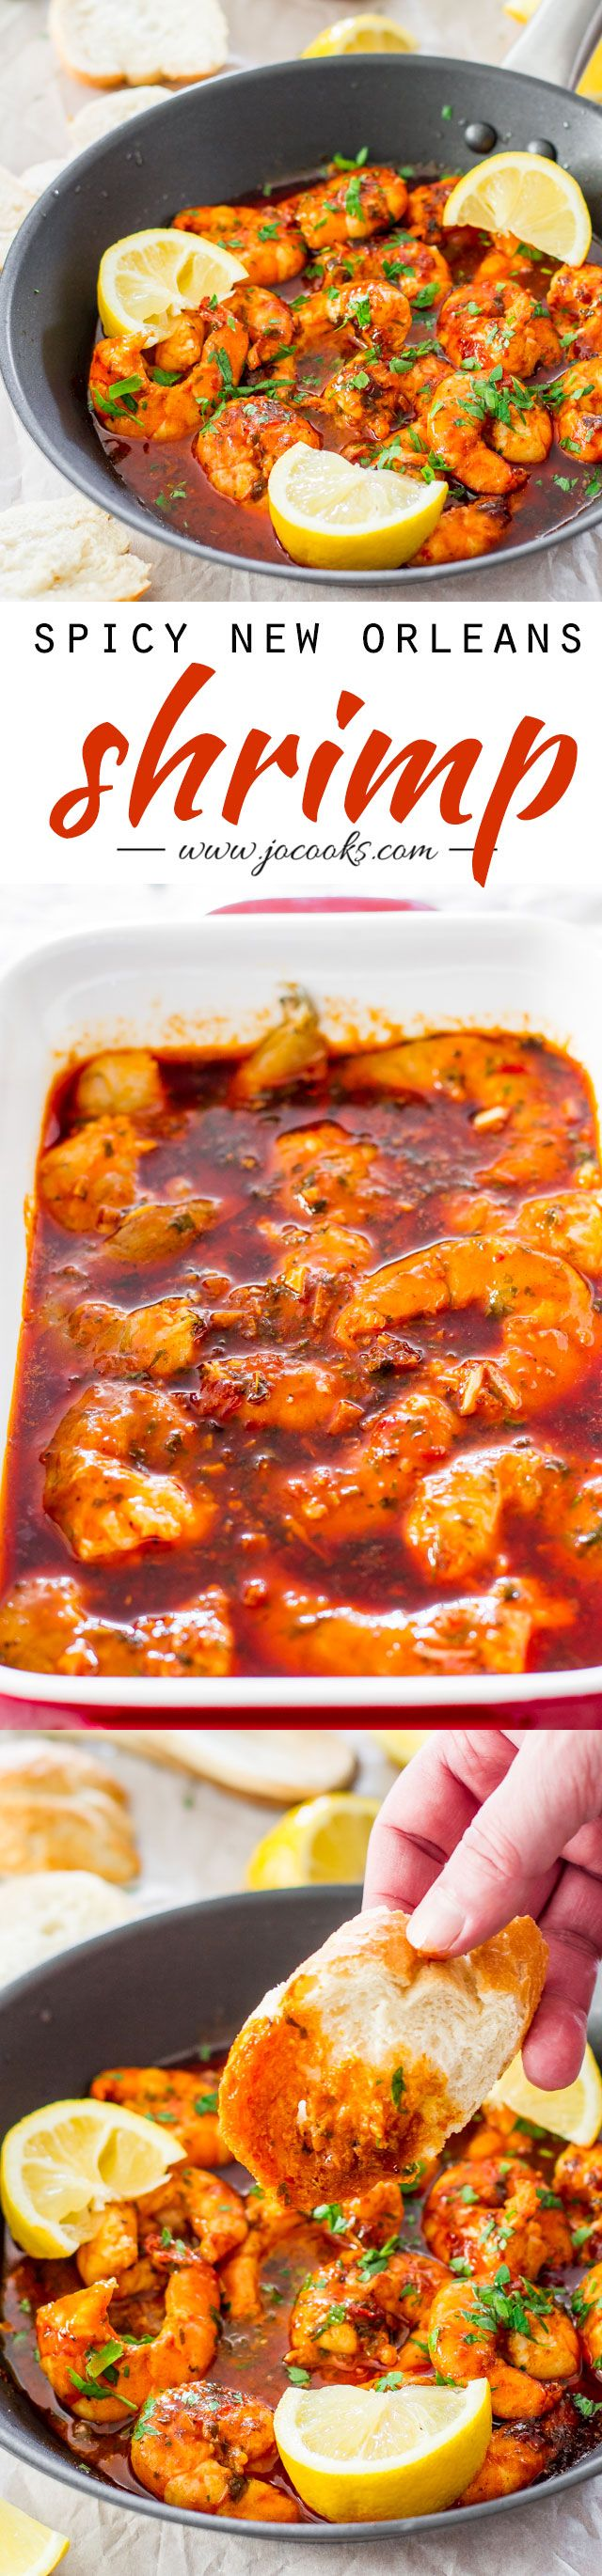 Spicy New Orleans Shrimp #paleo #grainfree #glutenfree